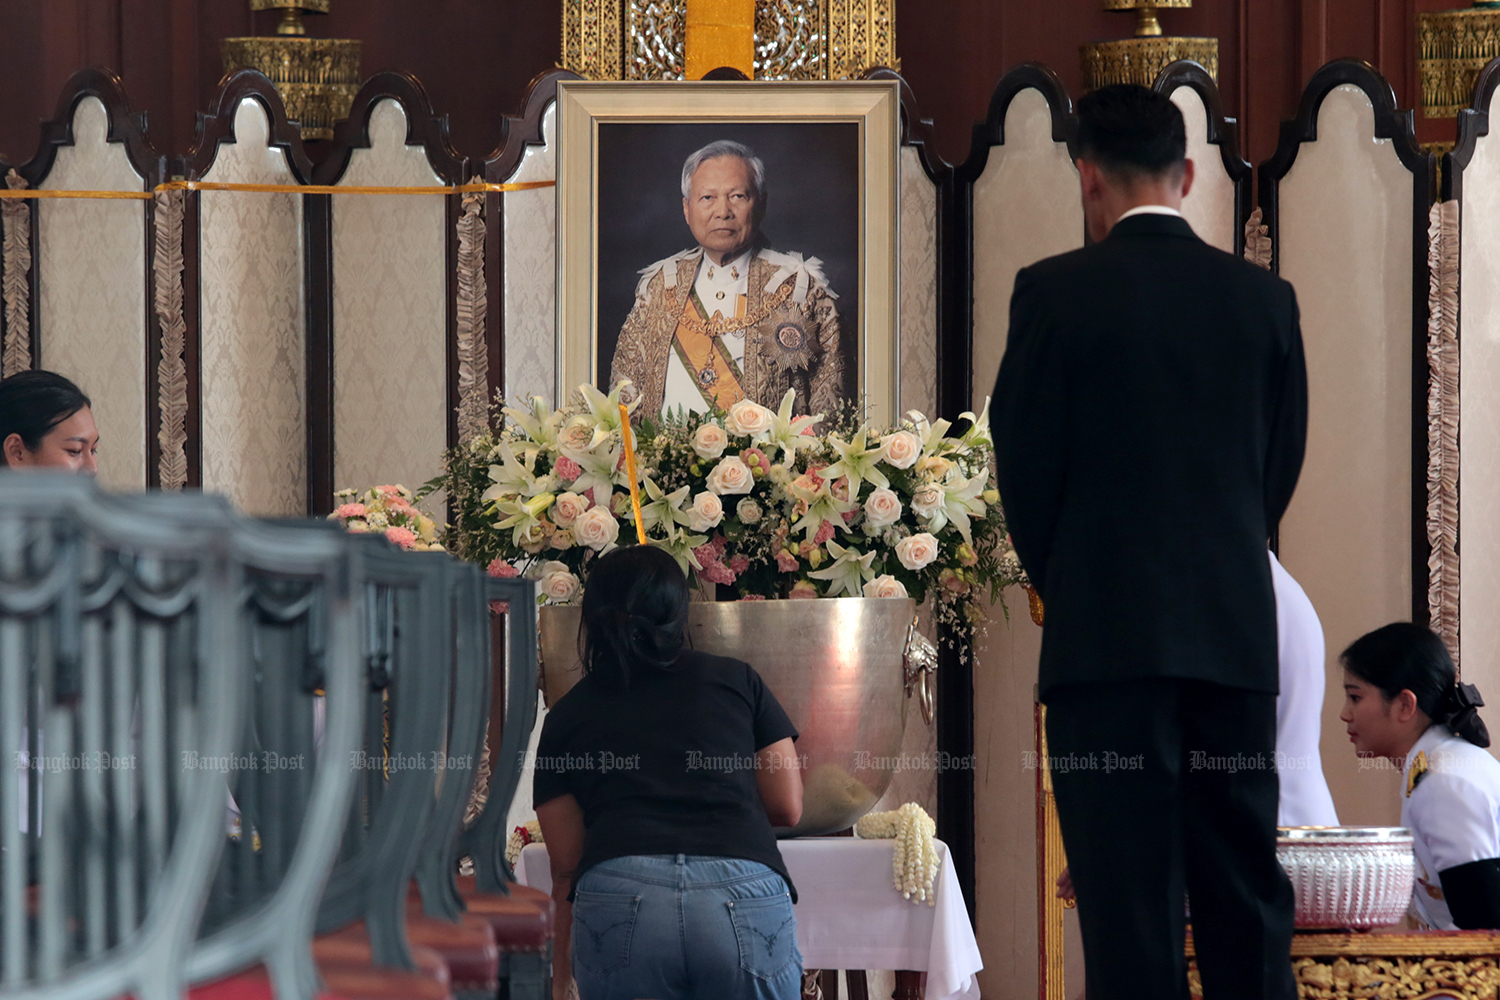 The body of late Privy Council president and statesman Gen Prem Tinsulanonda arrived at Wat Benchamaborpit for a religious ceremony on Monday. (Photo by Chanat Katanyu)